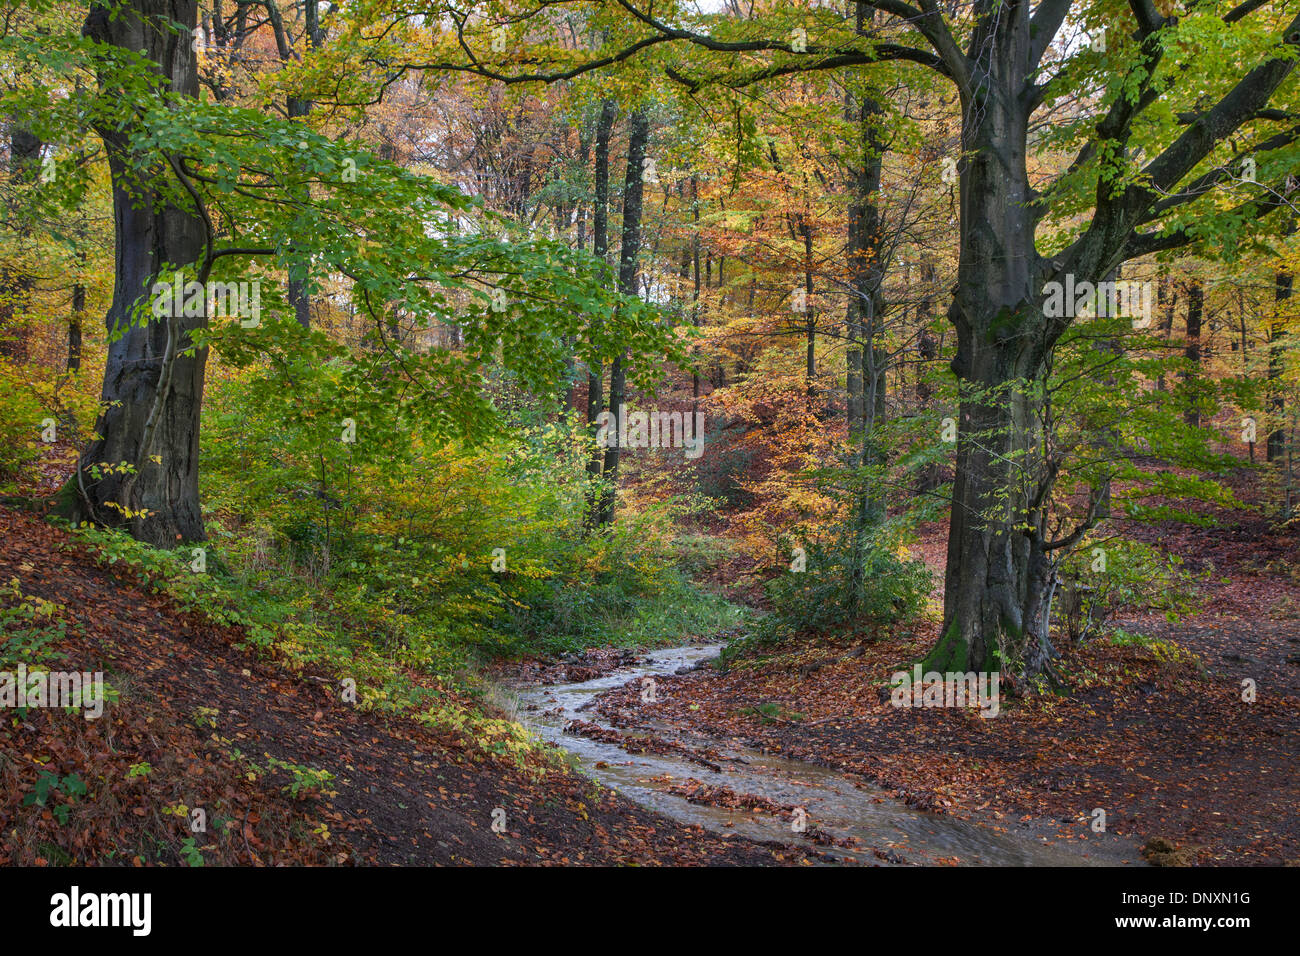 The stream Wayai in autumn forest near Spa in the Belgian Ardennes, Belgium - Stock Image